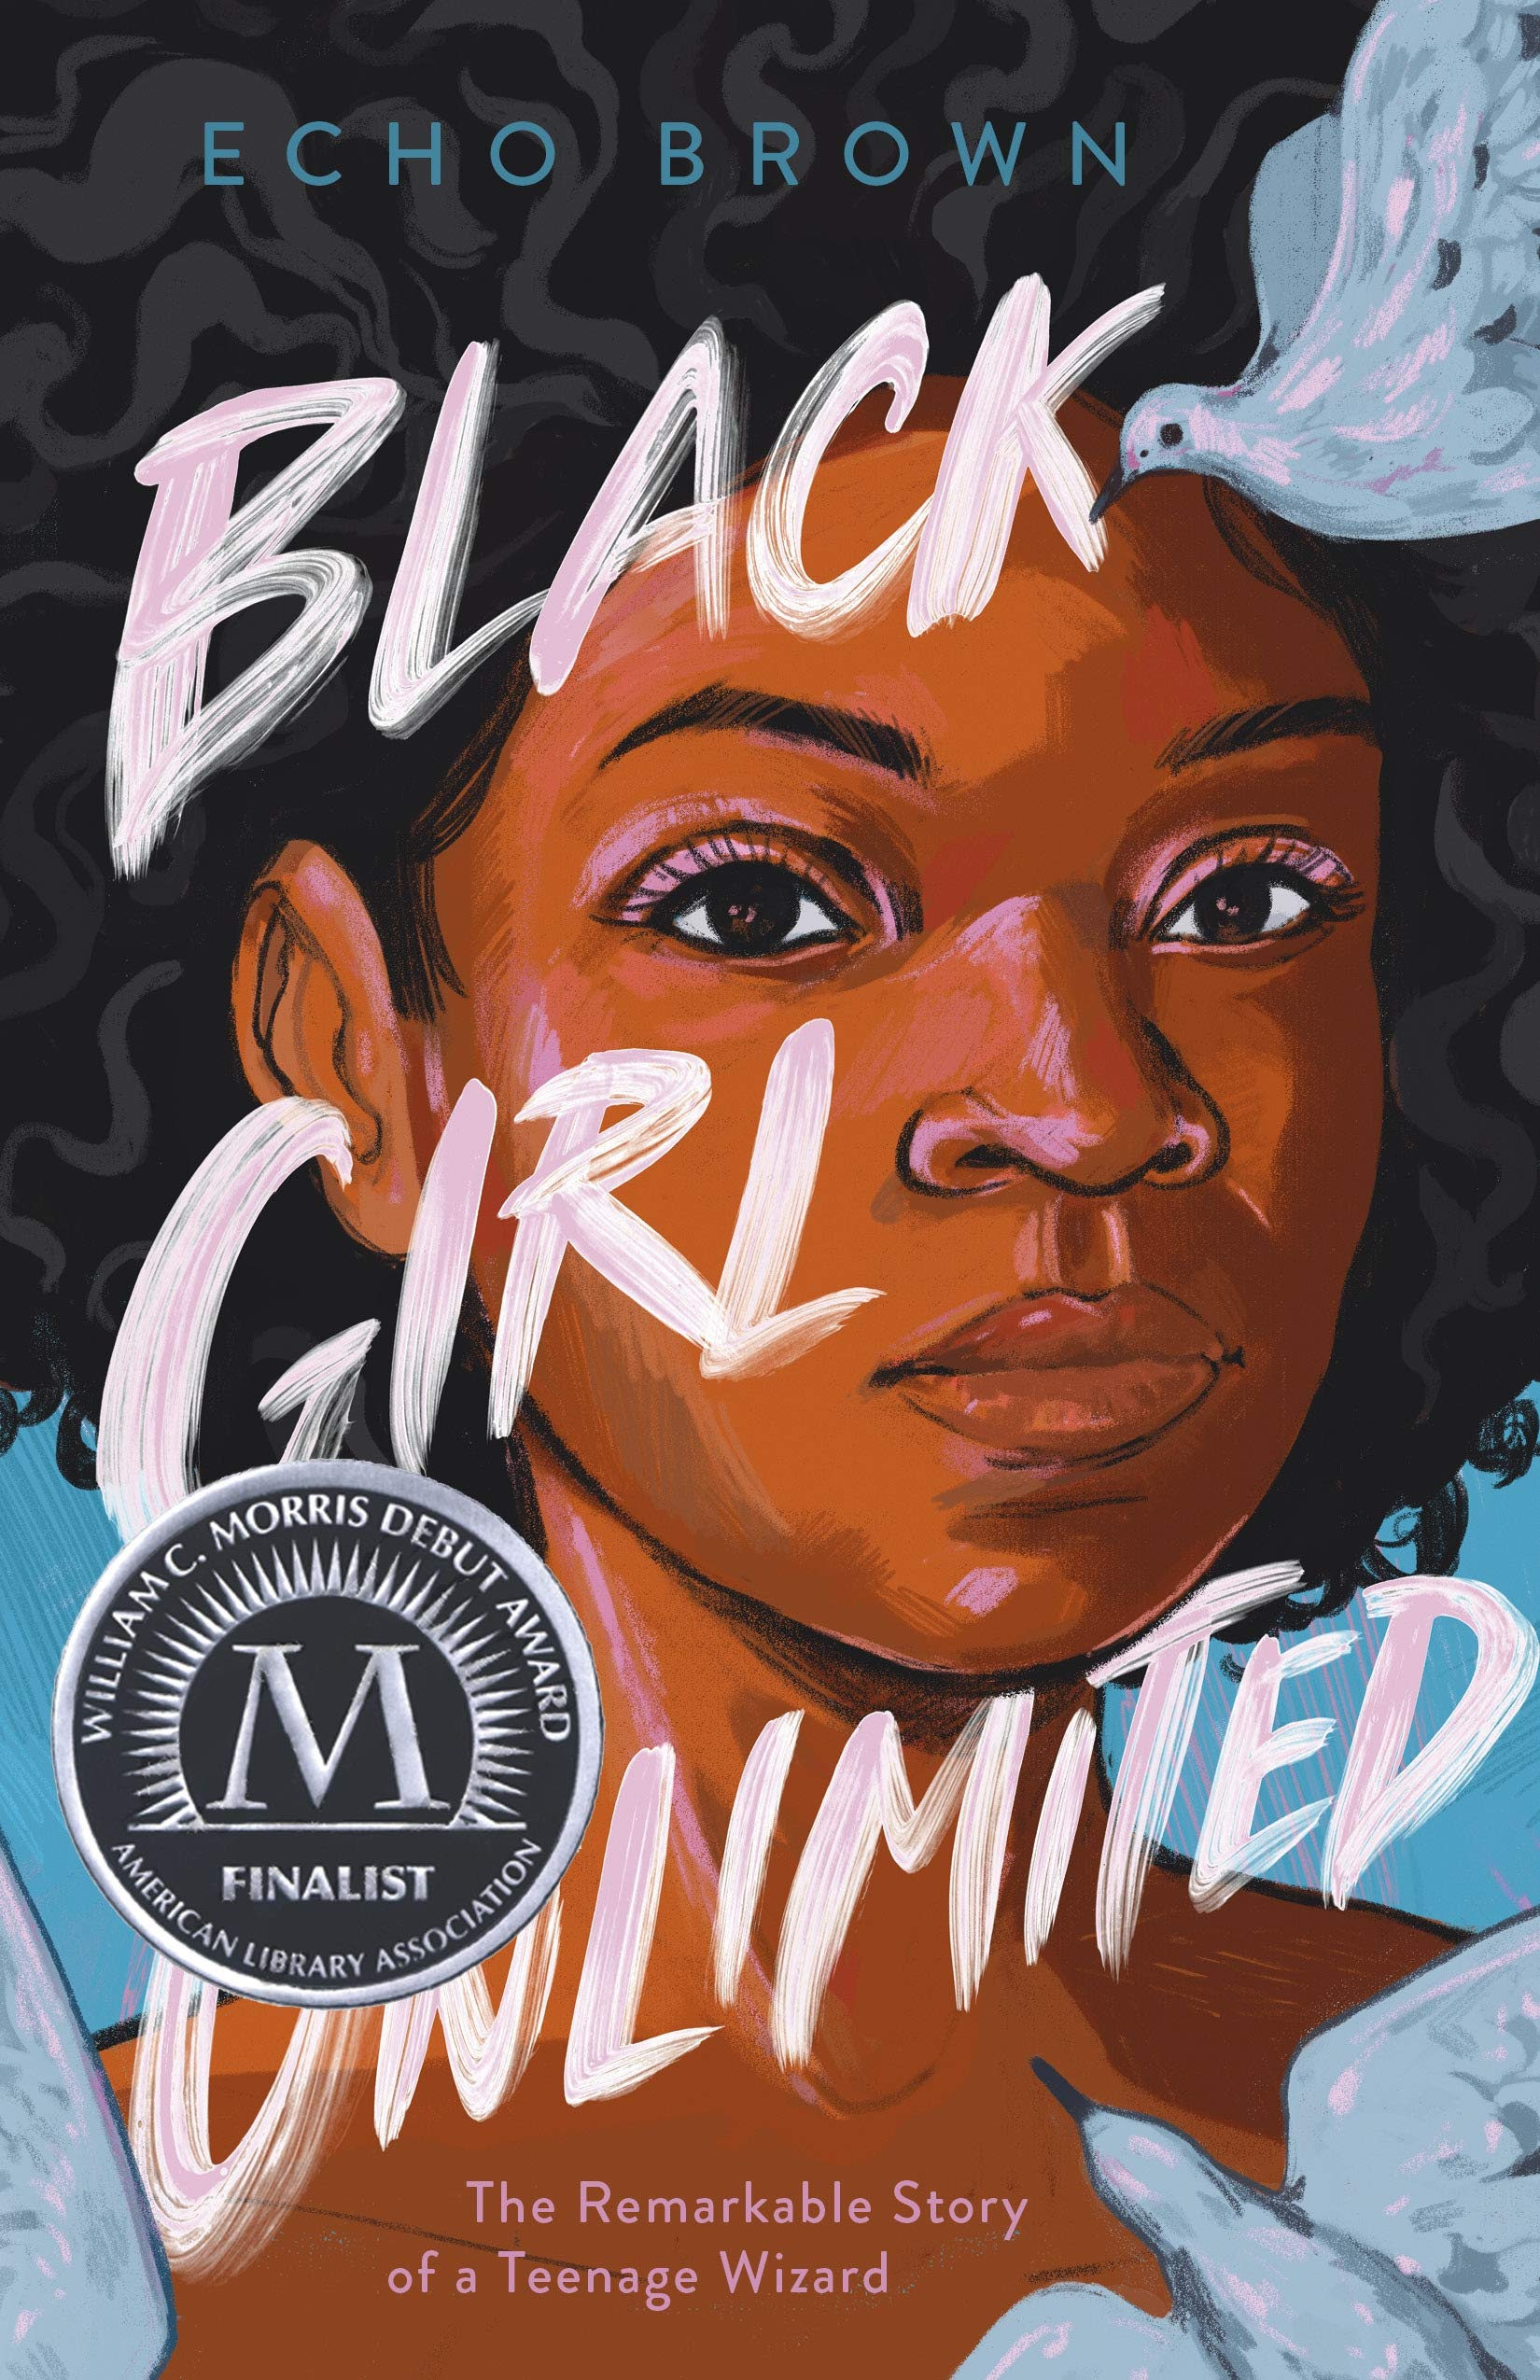 Black Girl Unlimited: The Remarkable Story of a Teenage Wizard